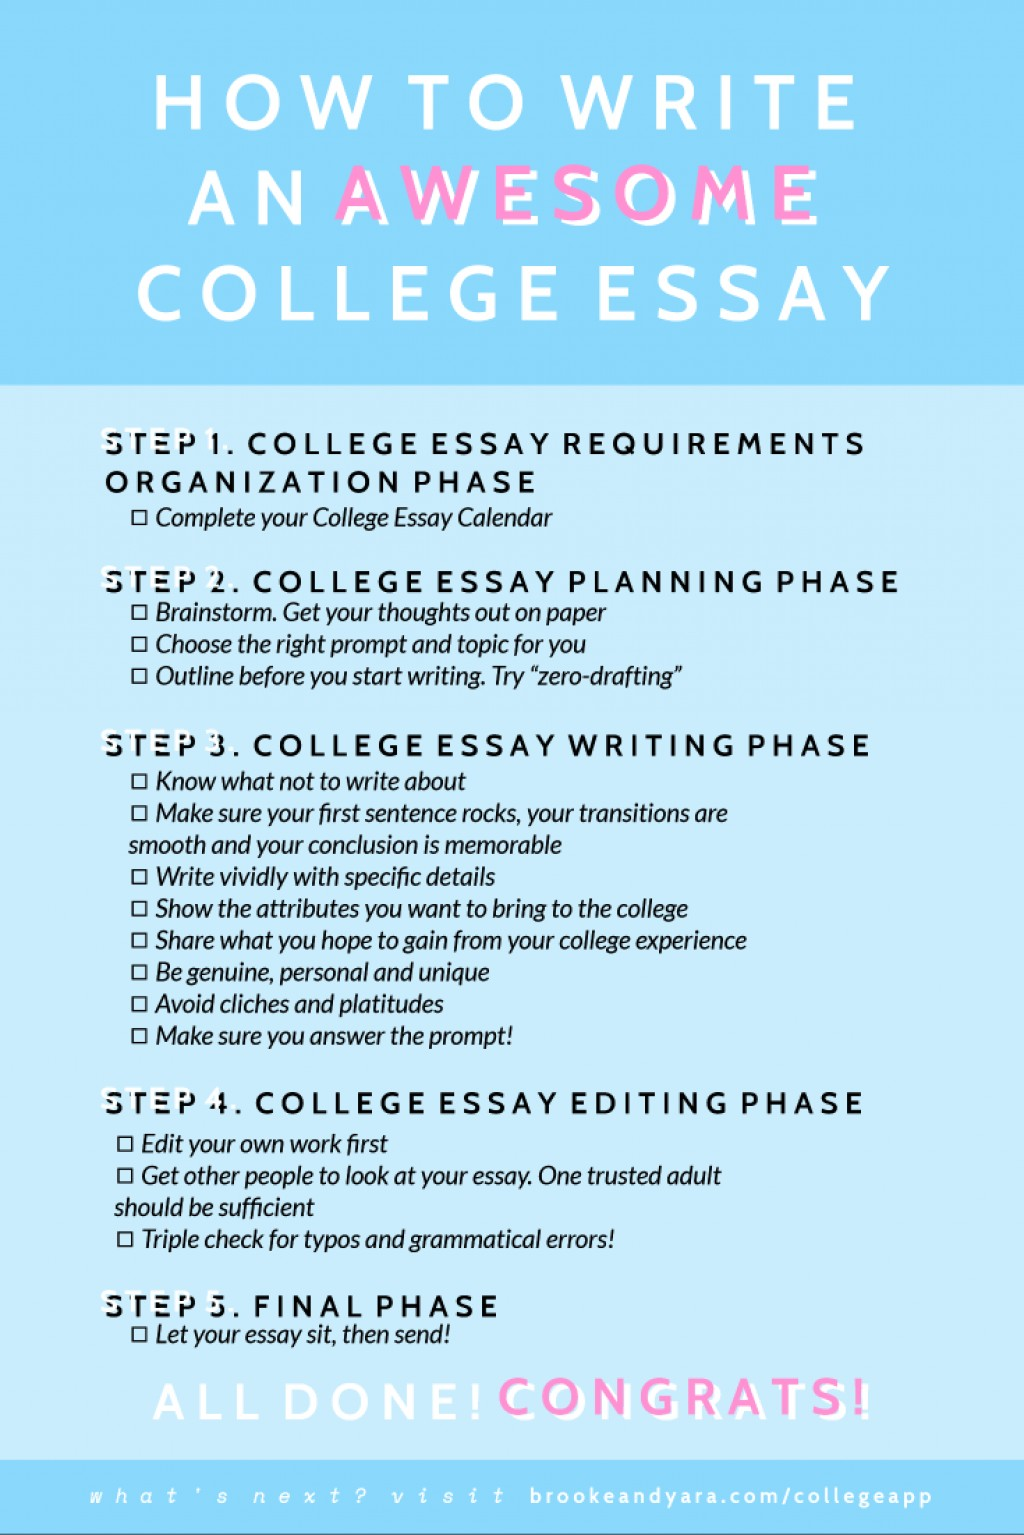 012 Best Website To Read Research Papers Paper 3028301476 Online Essay Editing Outstanding Large